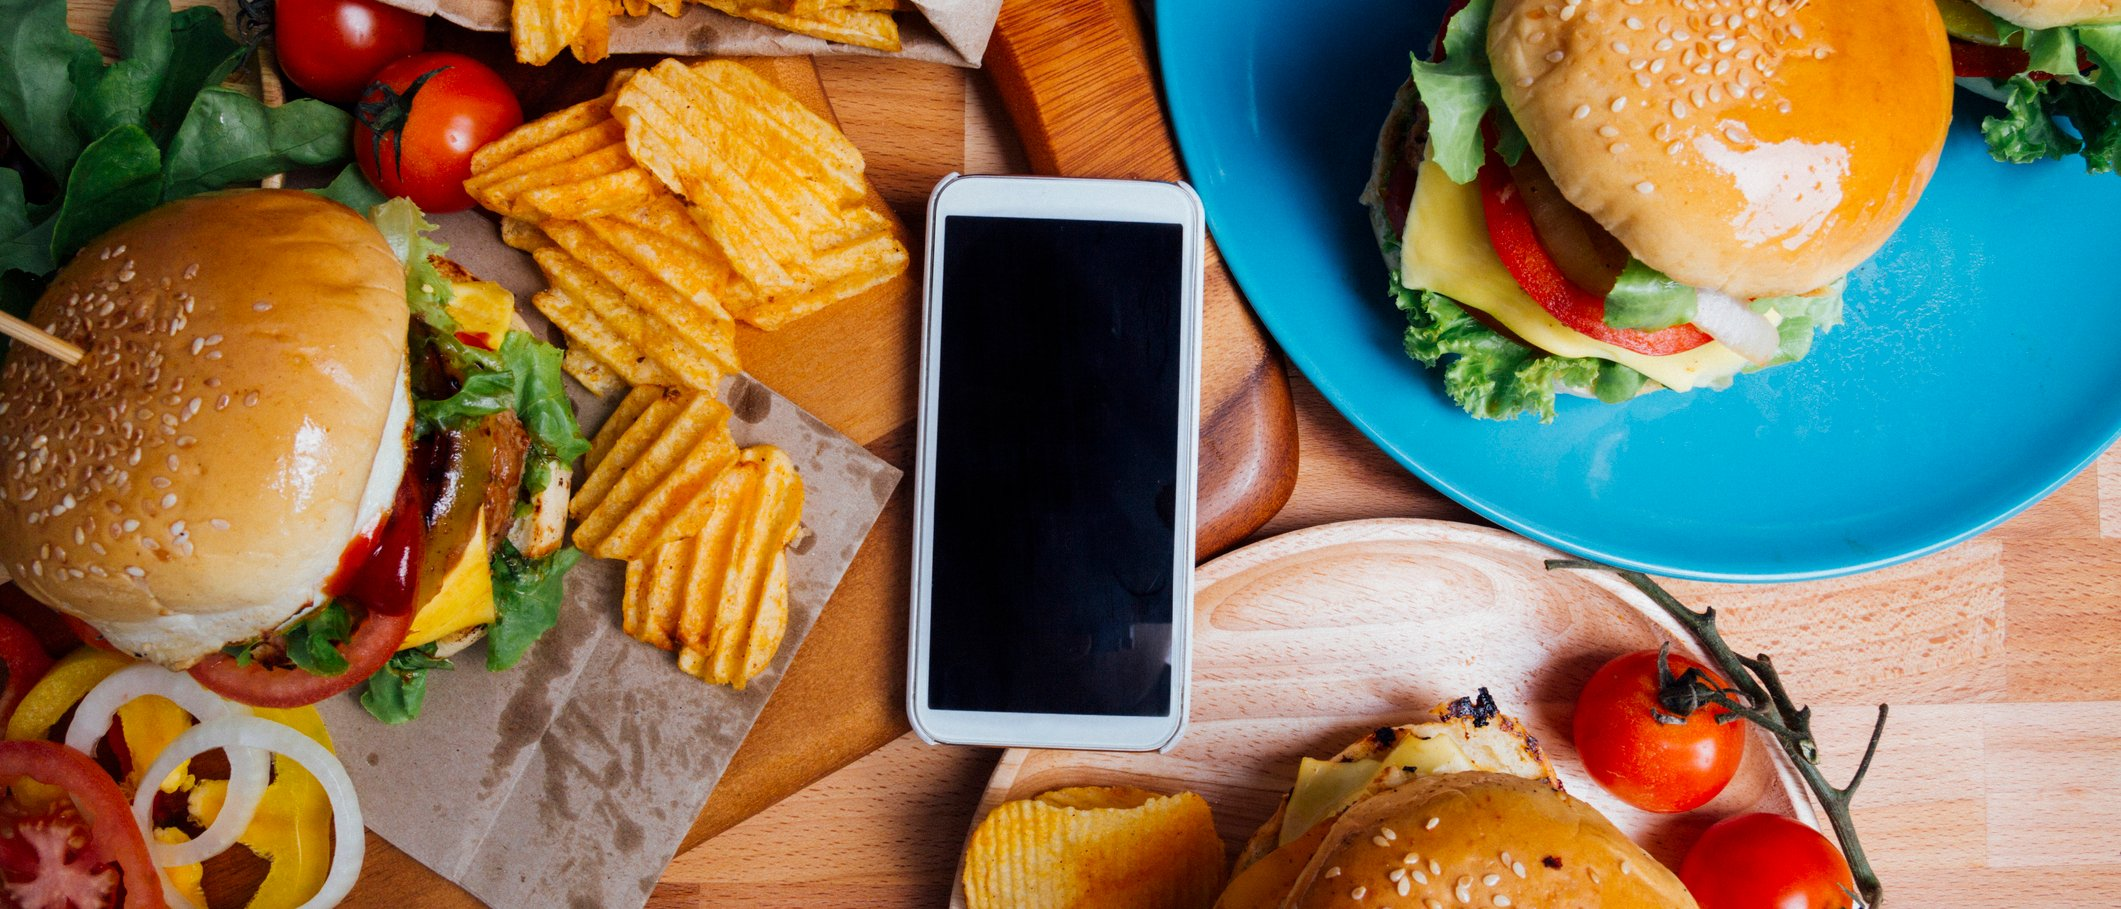 Cell phone placed in middle of a restaurant table surrounded by burgers and fries.